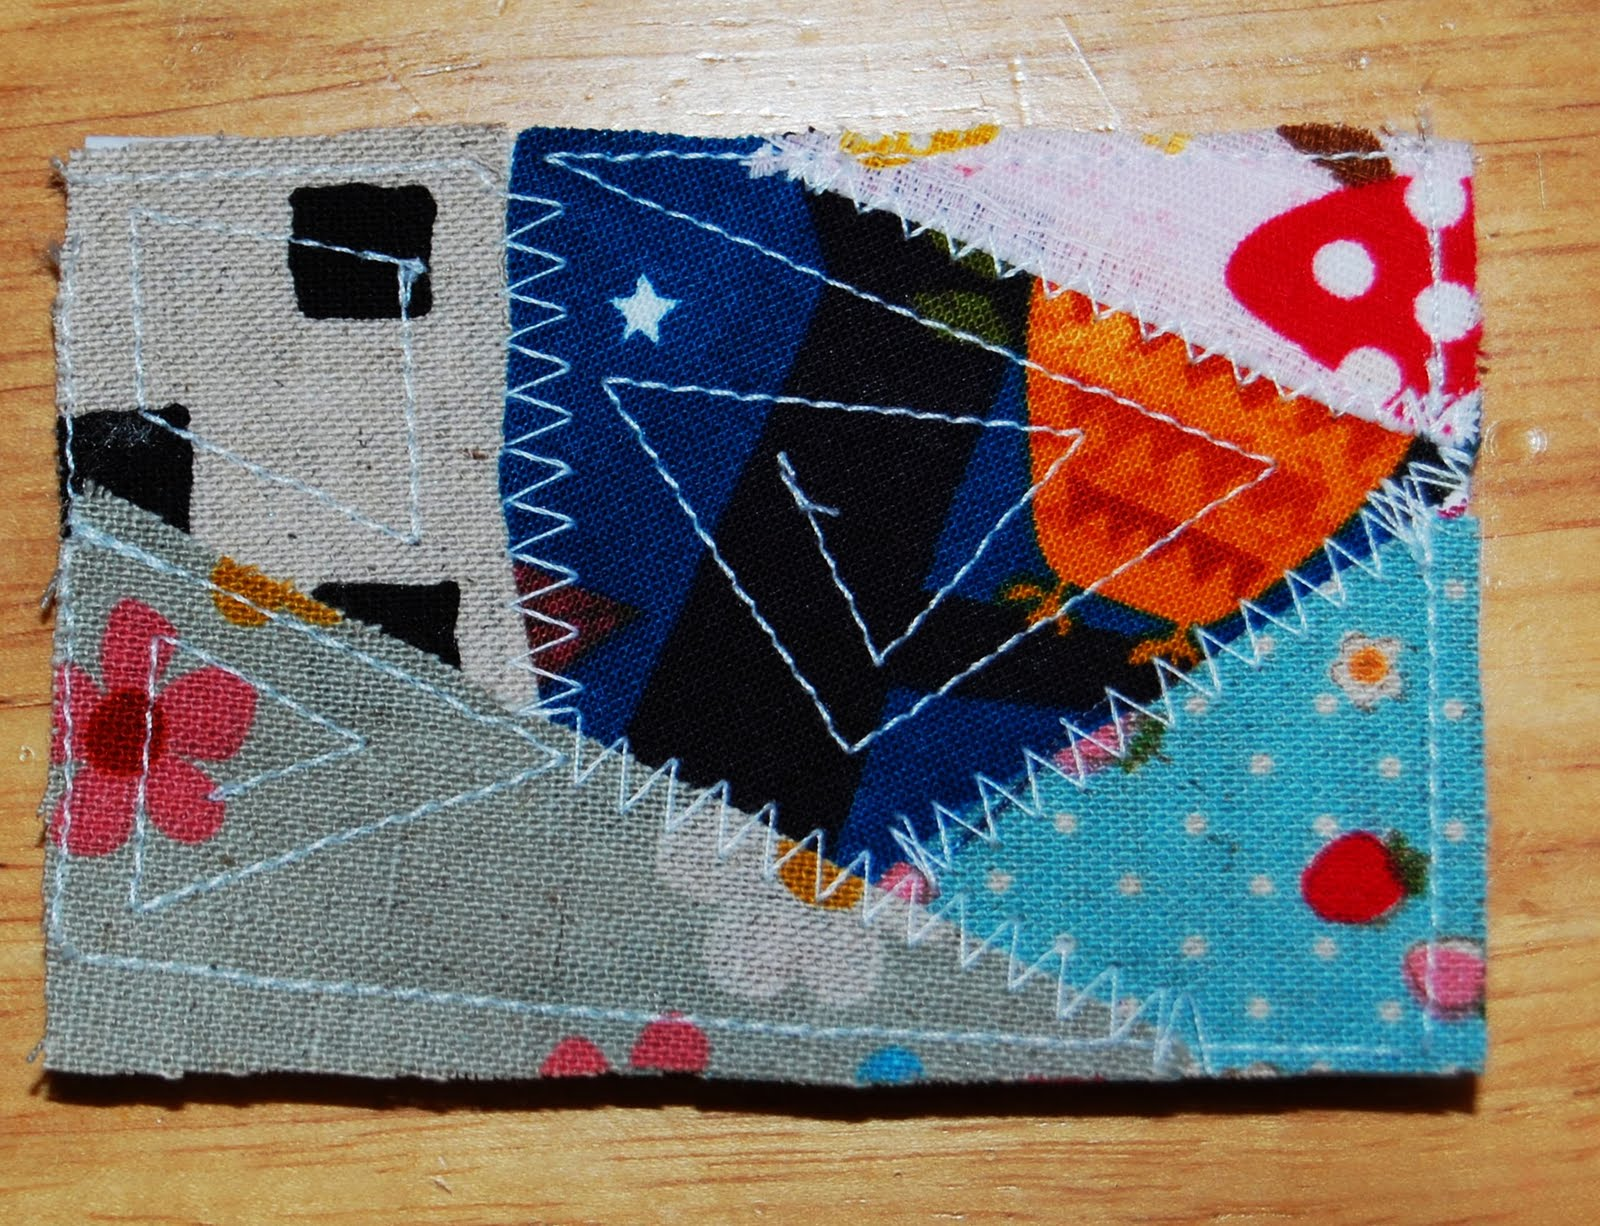 Mybotang fabric scrap series cards - I Get To Unwind With A Bag Full Of Scrap Faby And Loads Of Possibilities Grin